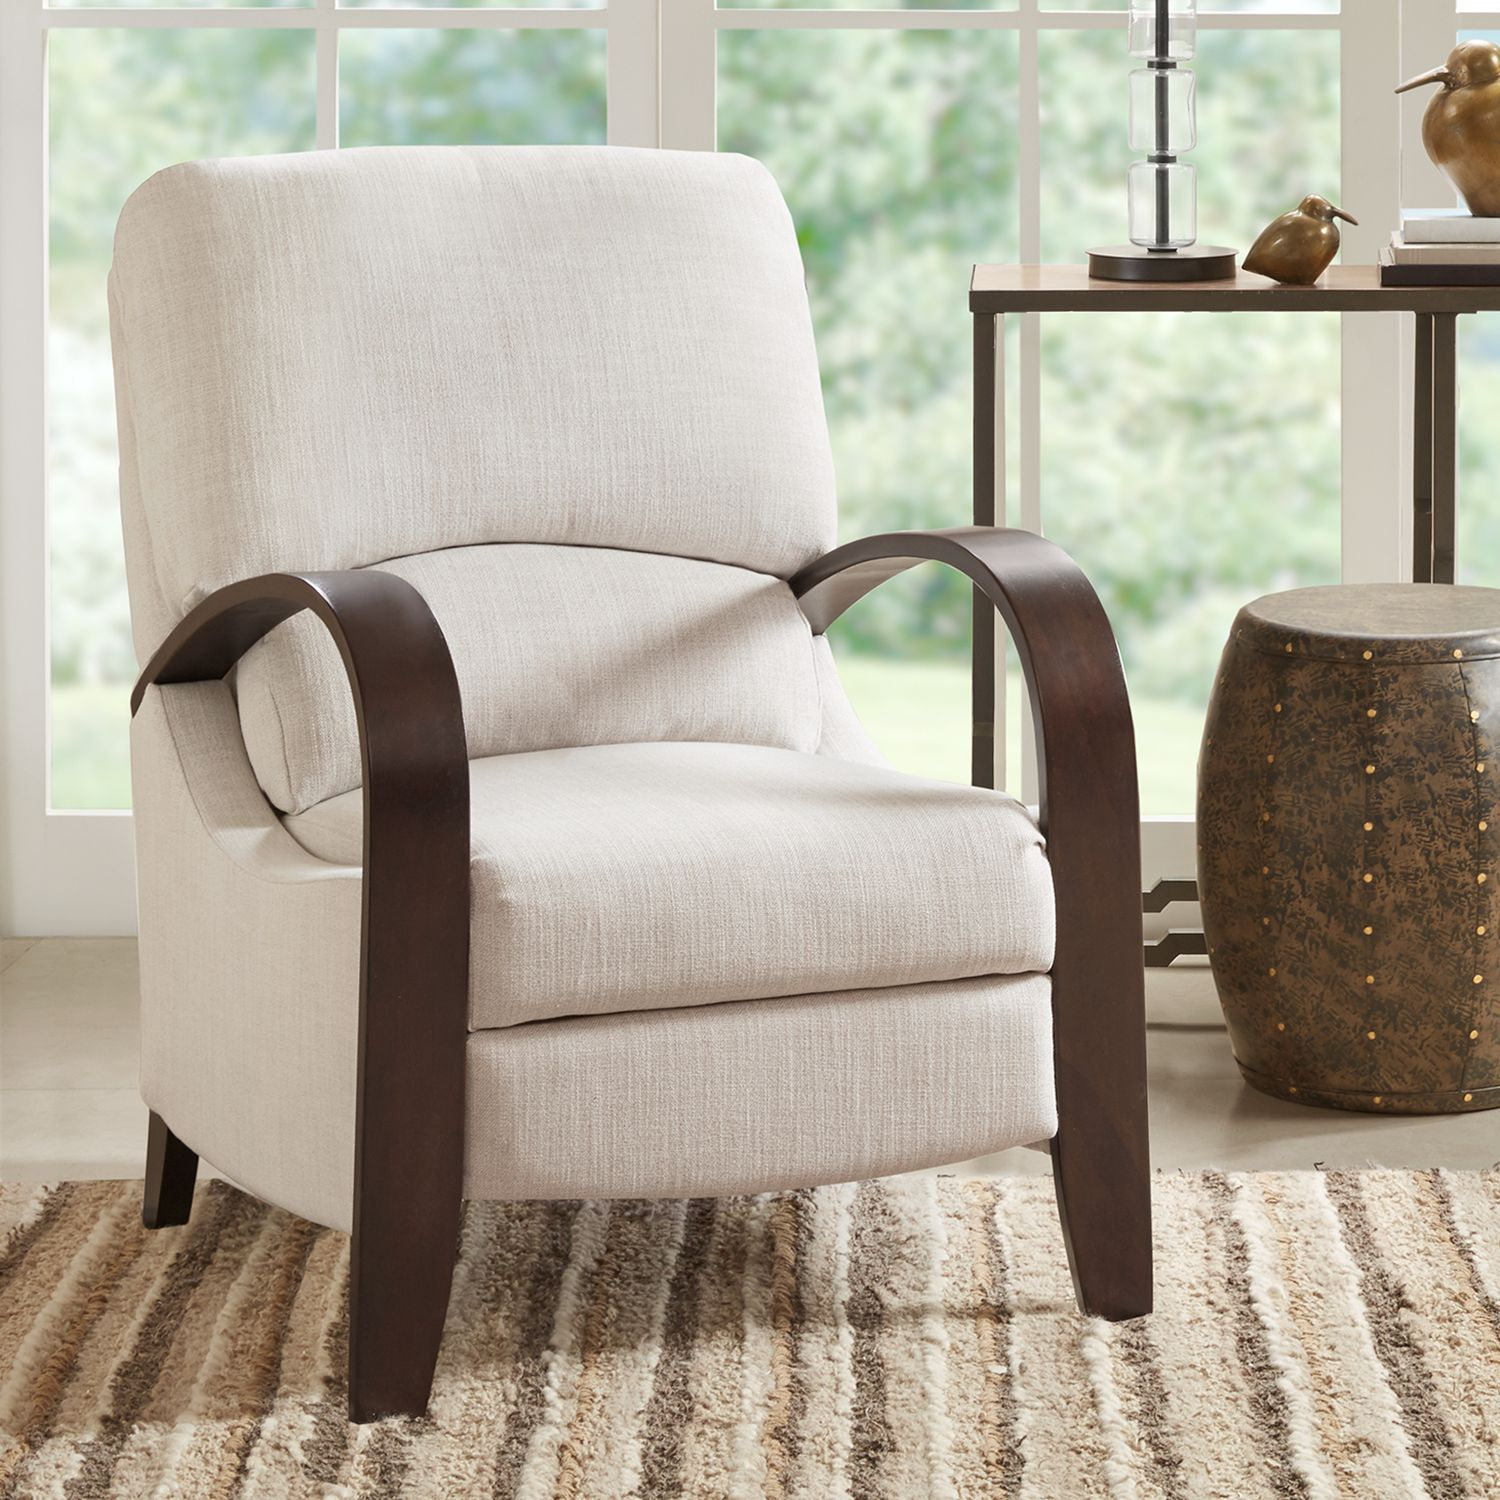 Madison Park Sheridan Recliner Chair